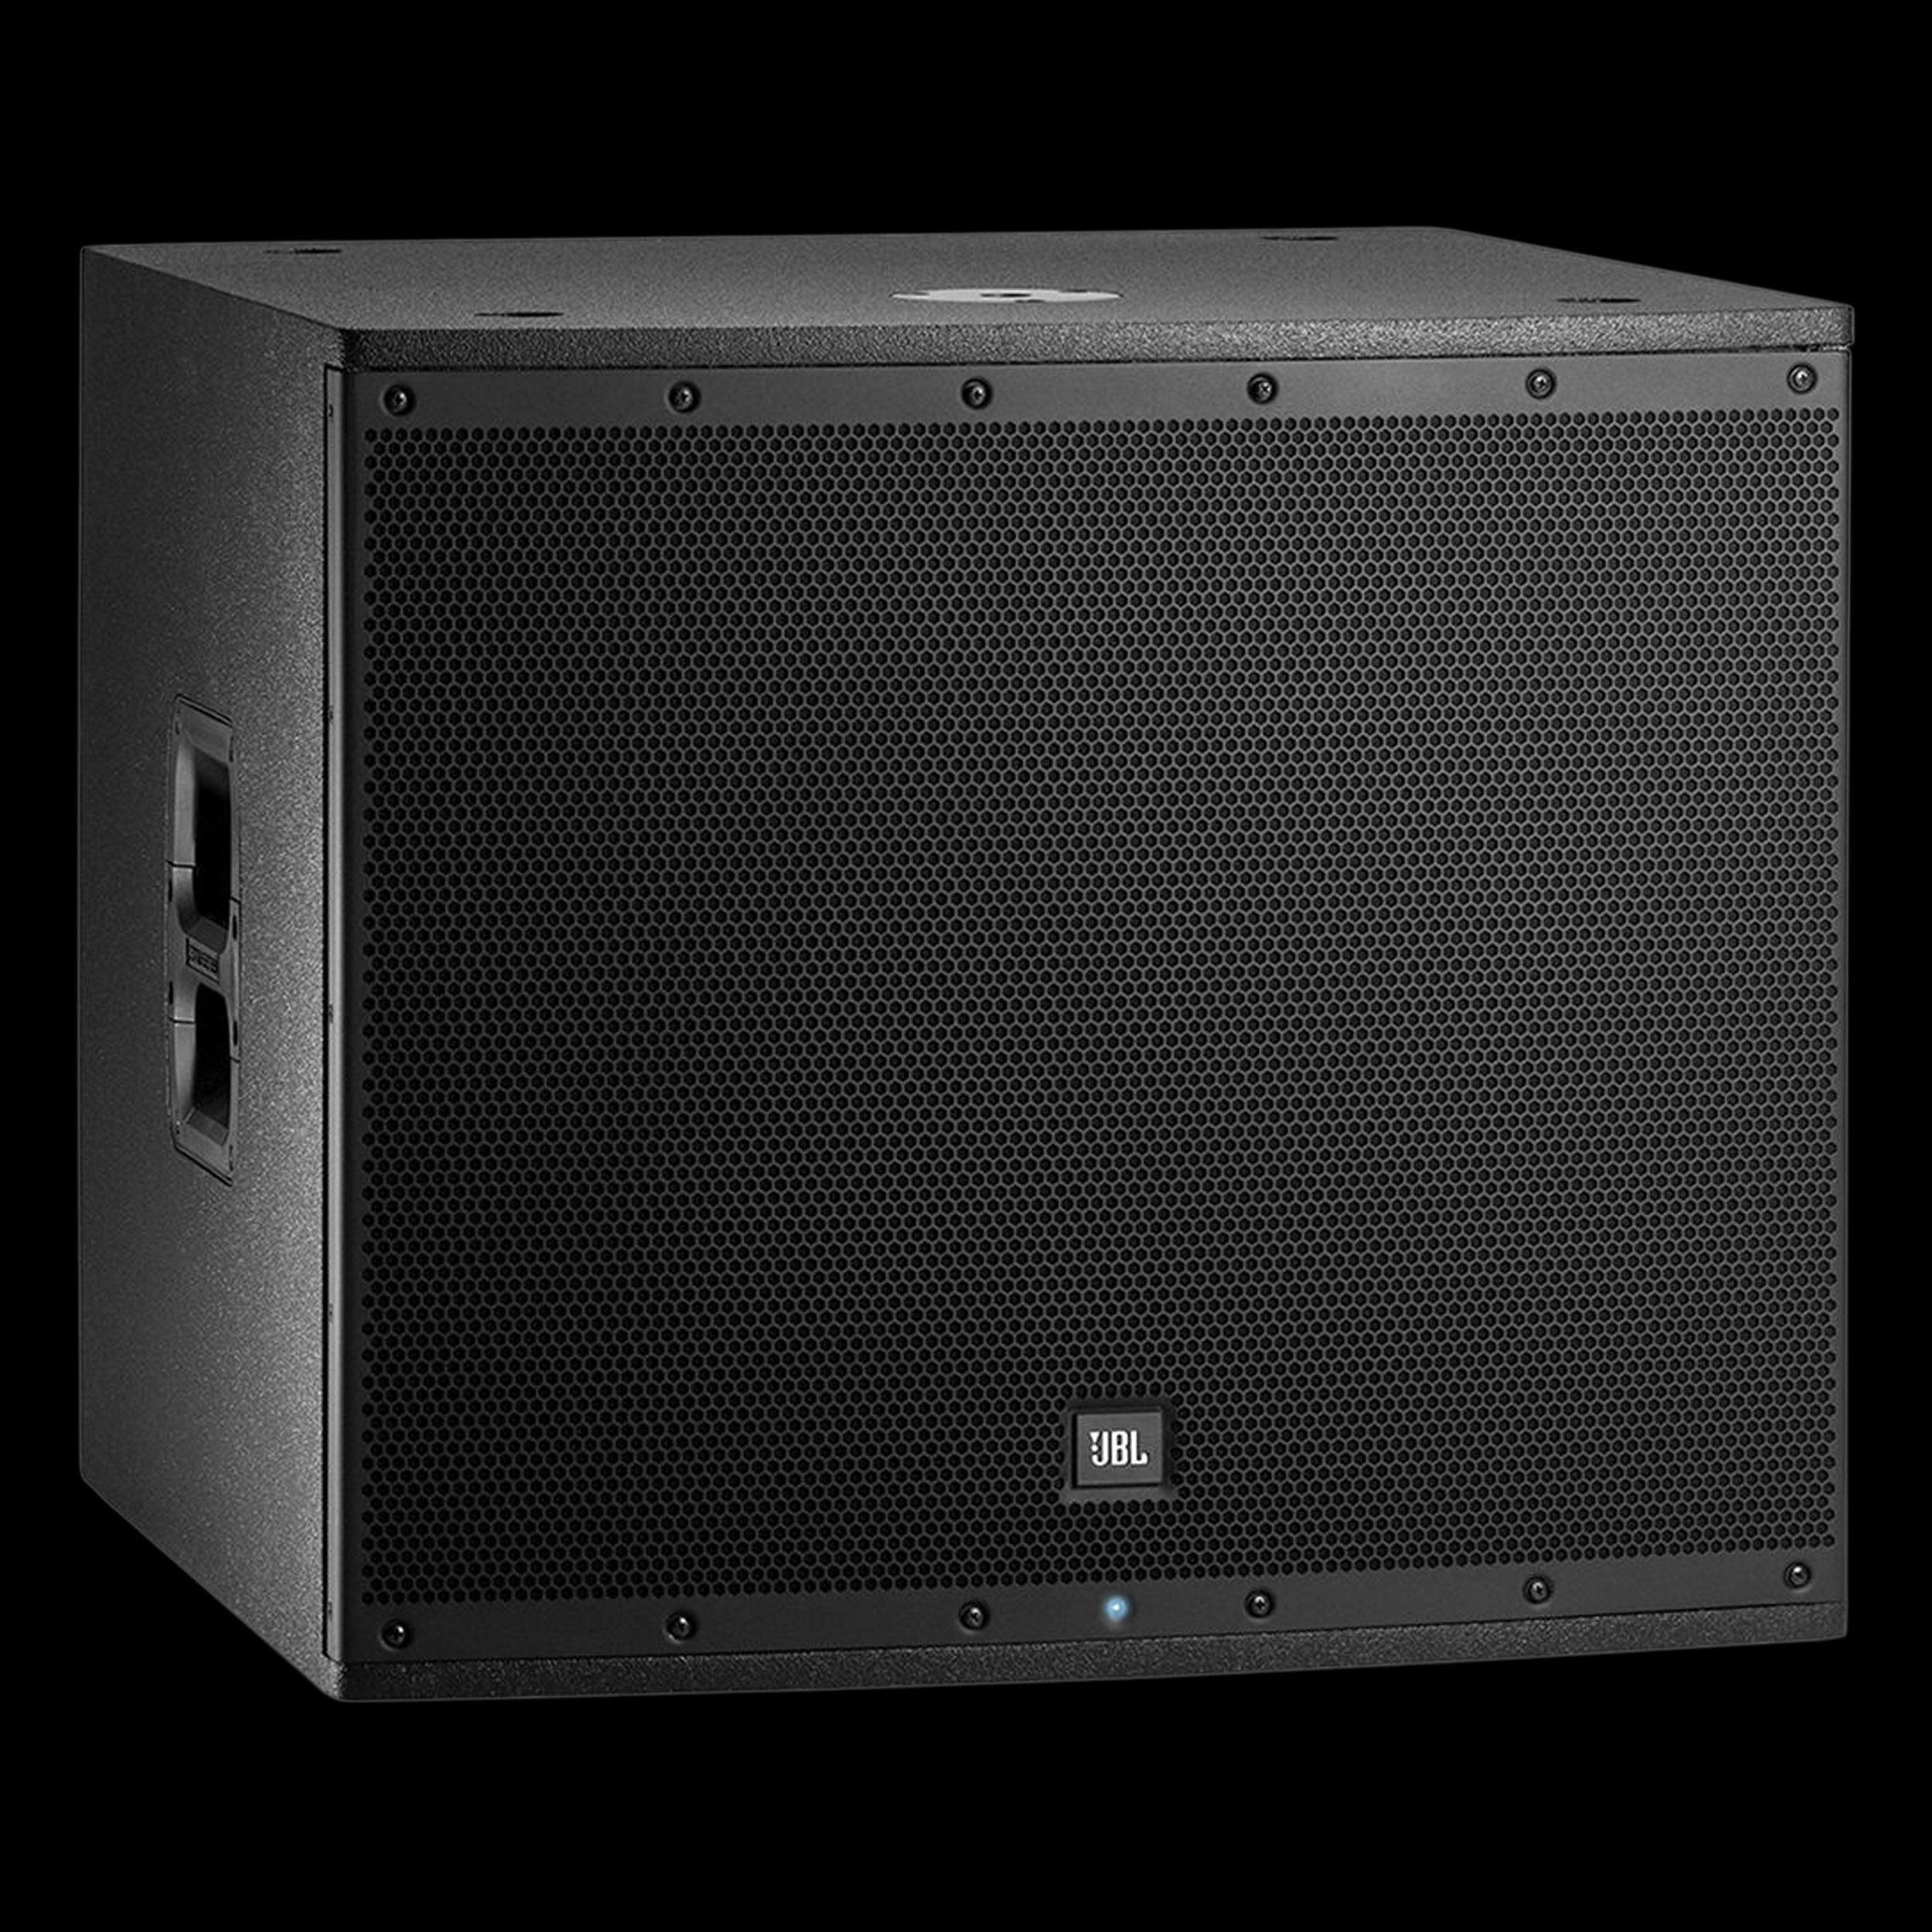 jbl eon618s 1000 watt powered 18 inch subwoofer. Black Bedroom Furniture Sets. Home Design Ideas